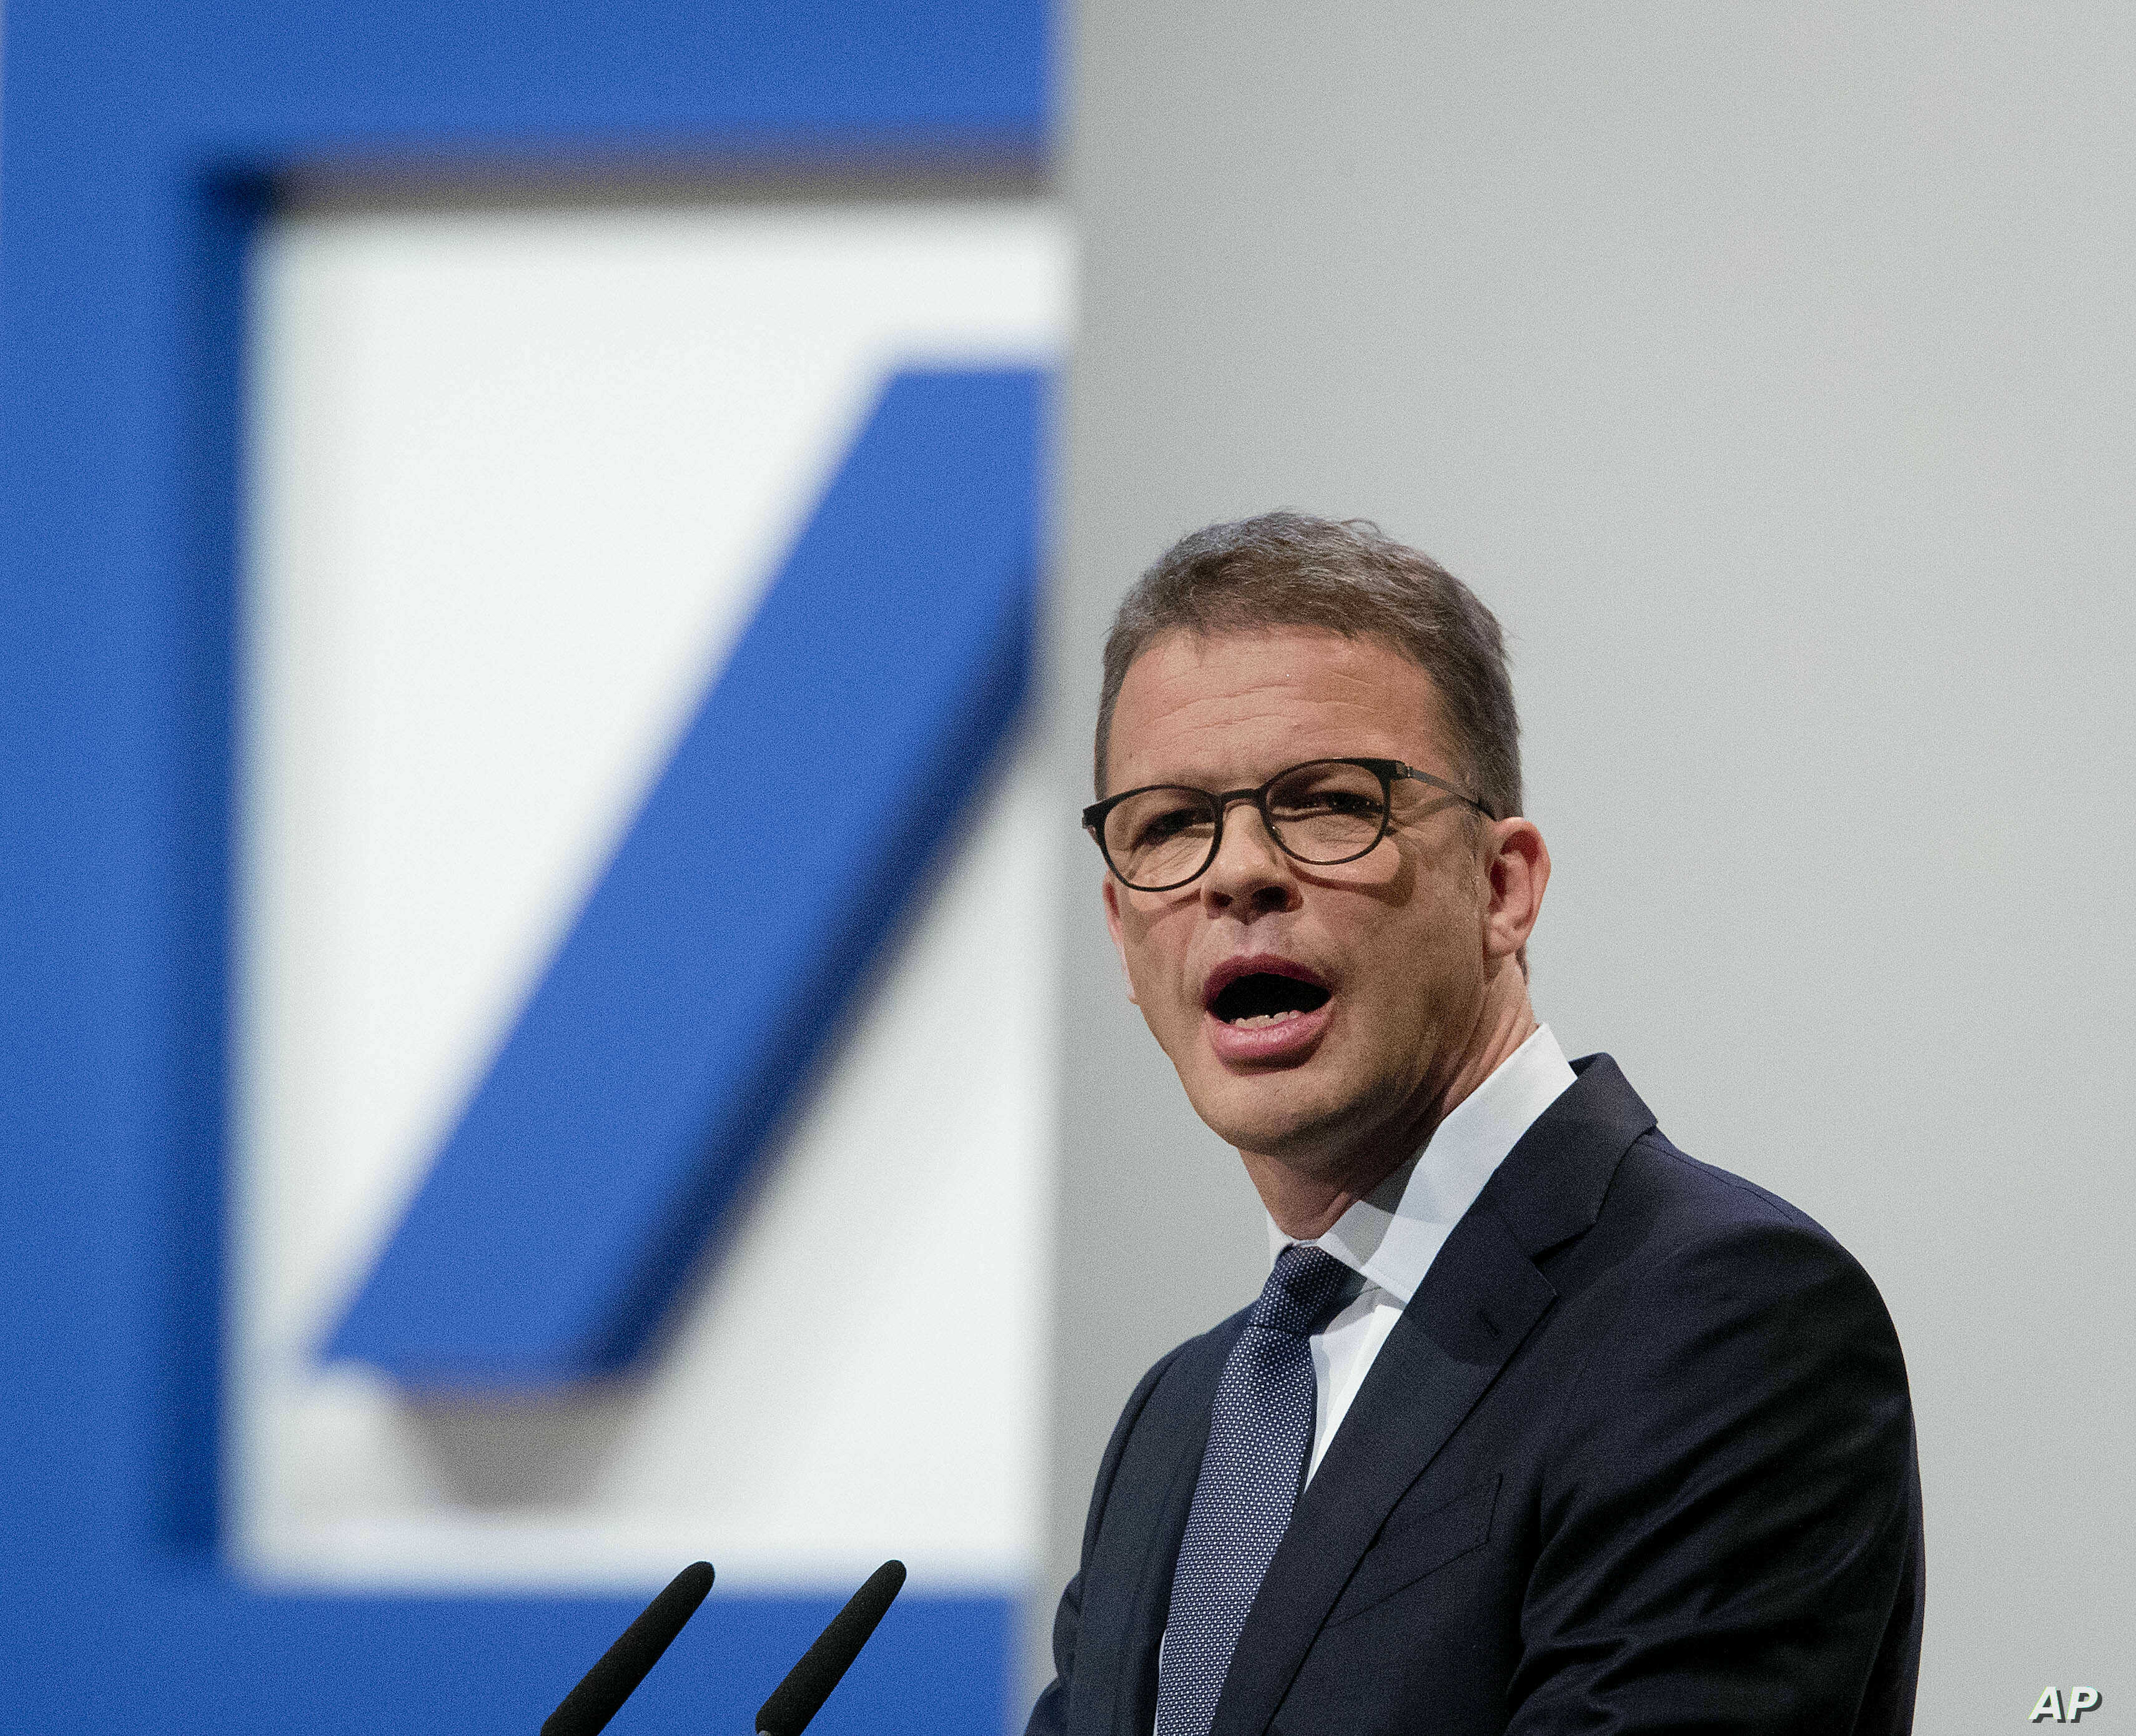 FILE - CEO of Deutsche Bank Christian Sewing speaks during the annual shareholders meeting in Frankfurt, Germany, May 23, 2019.